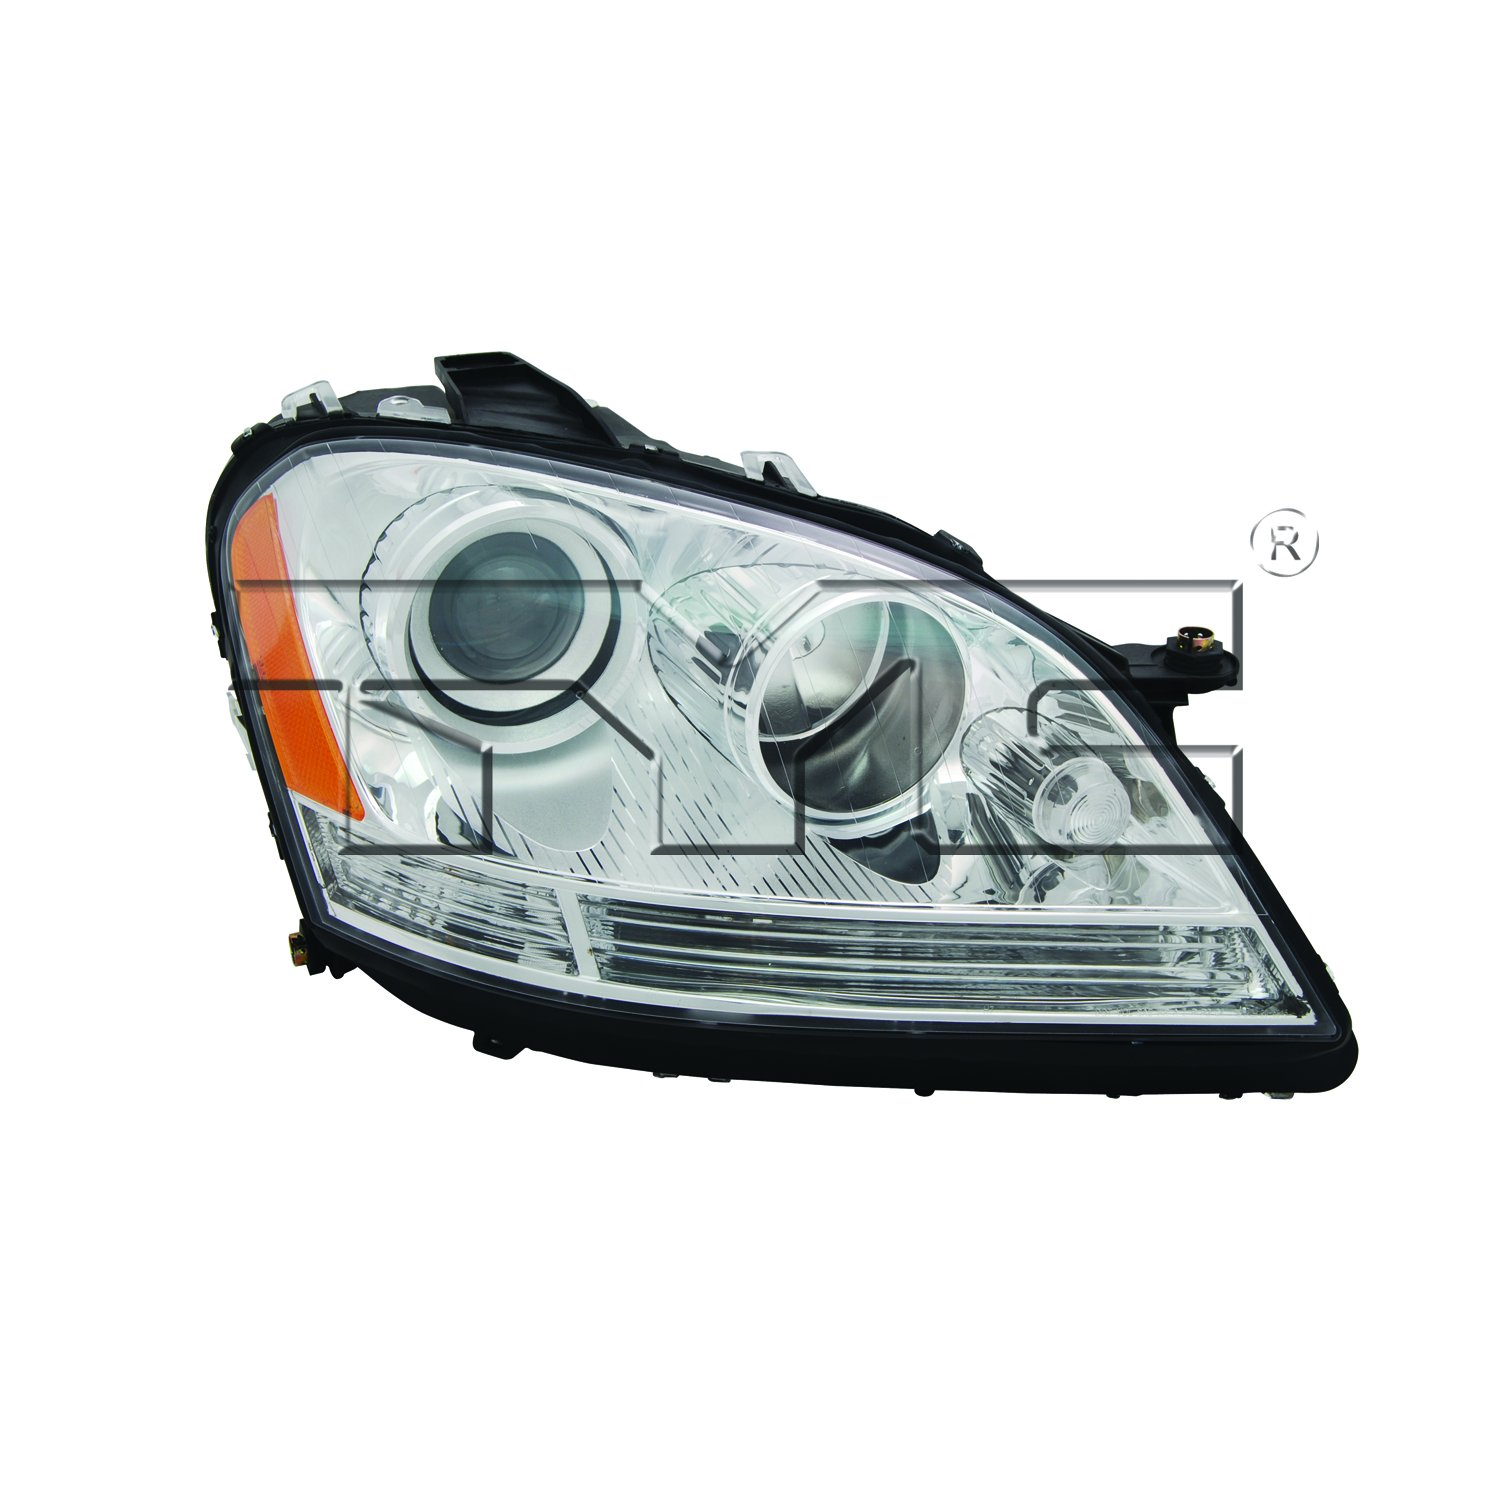 TYC 20-6915-00-1 Mercedes-Benz Right Replacement Head Lamp